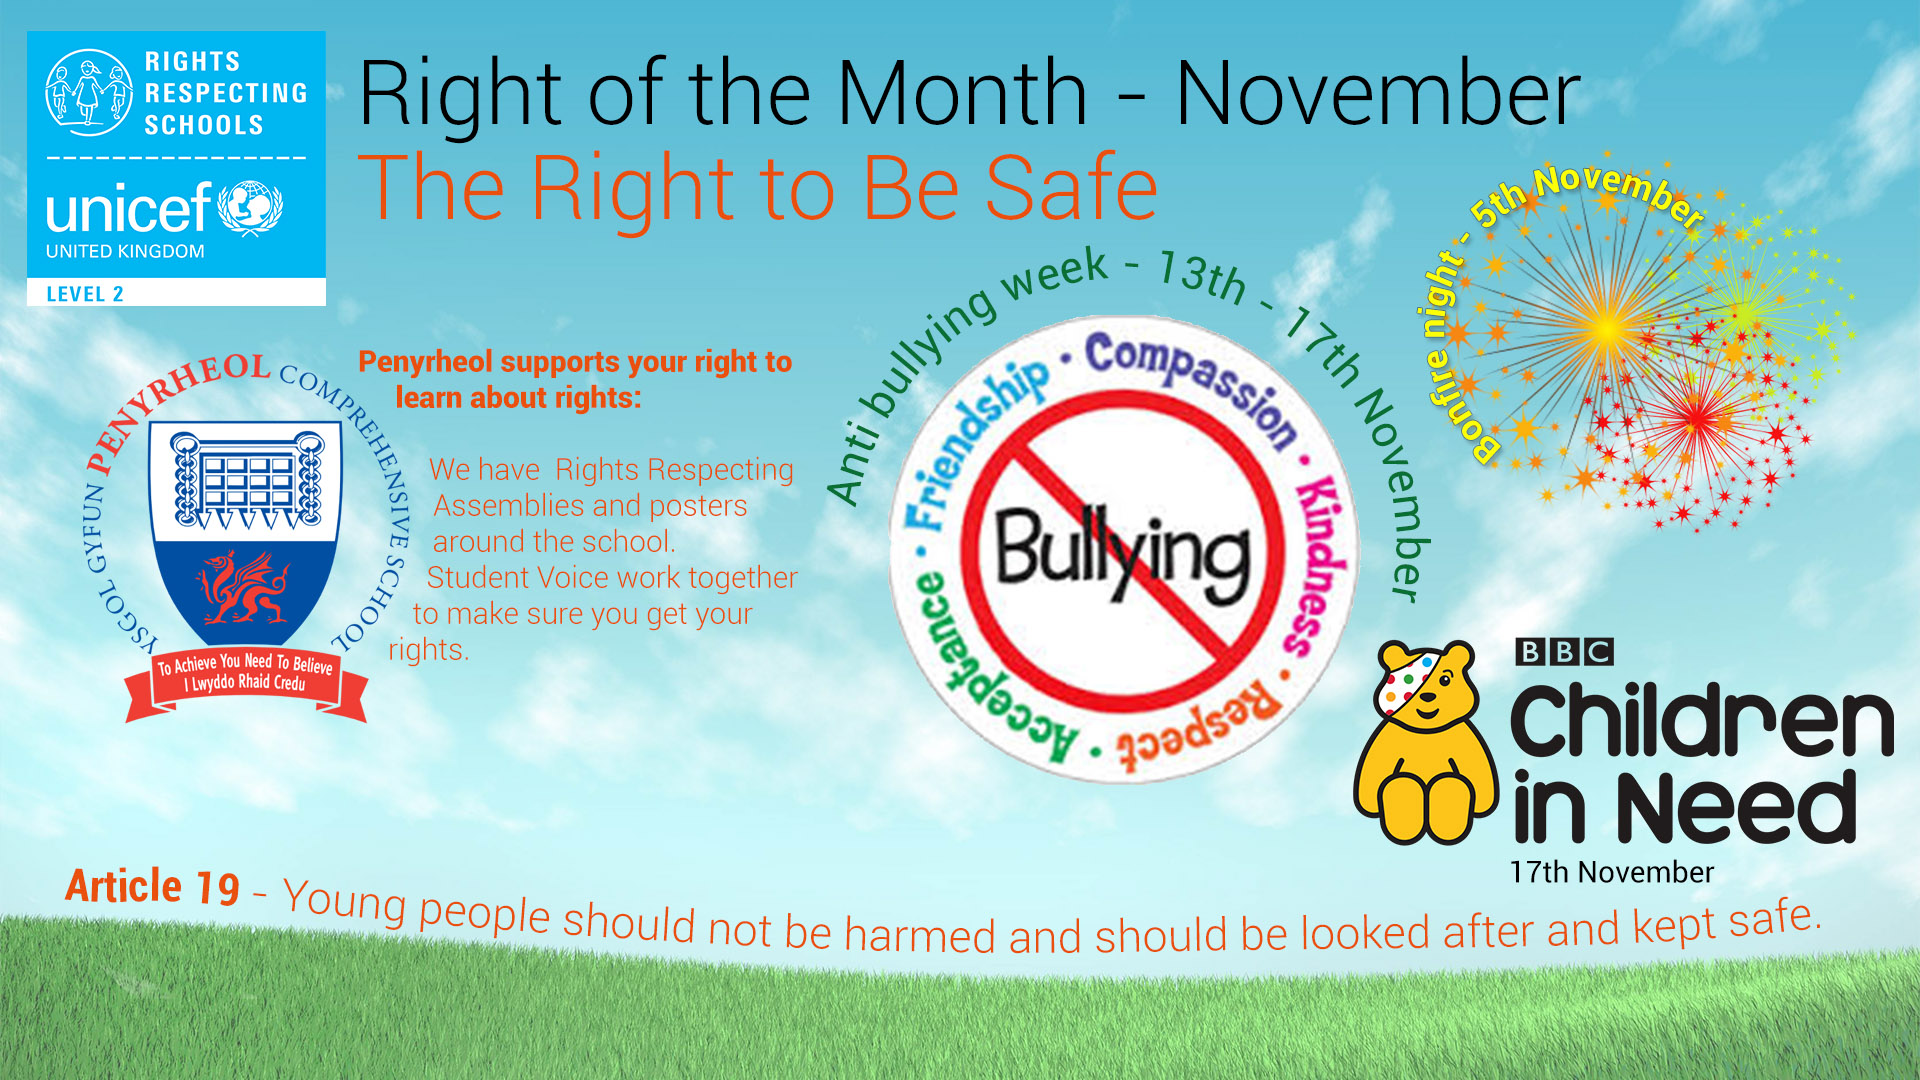 Rights Respecting Schools – November 2017 #RRS #RightsHour